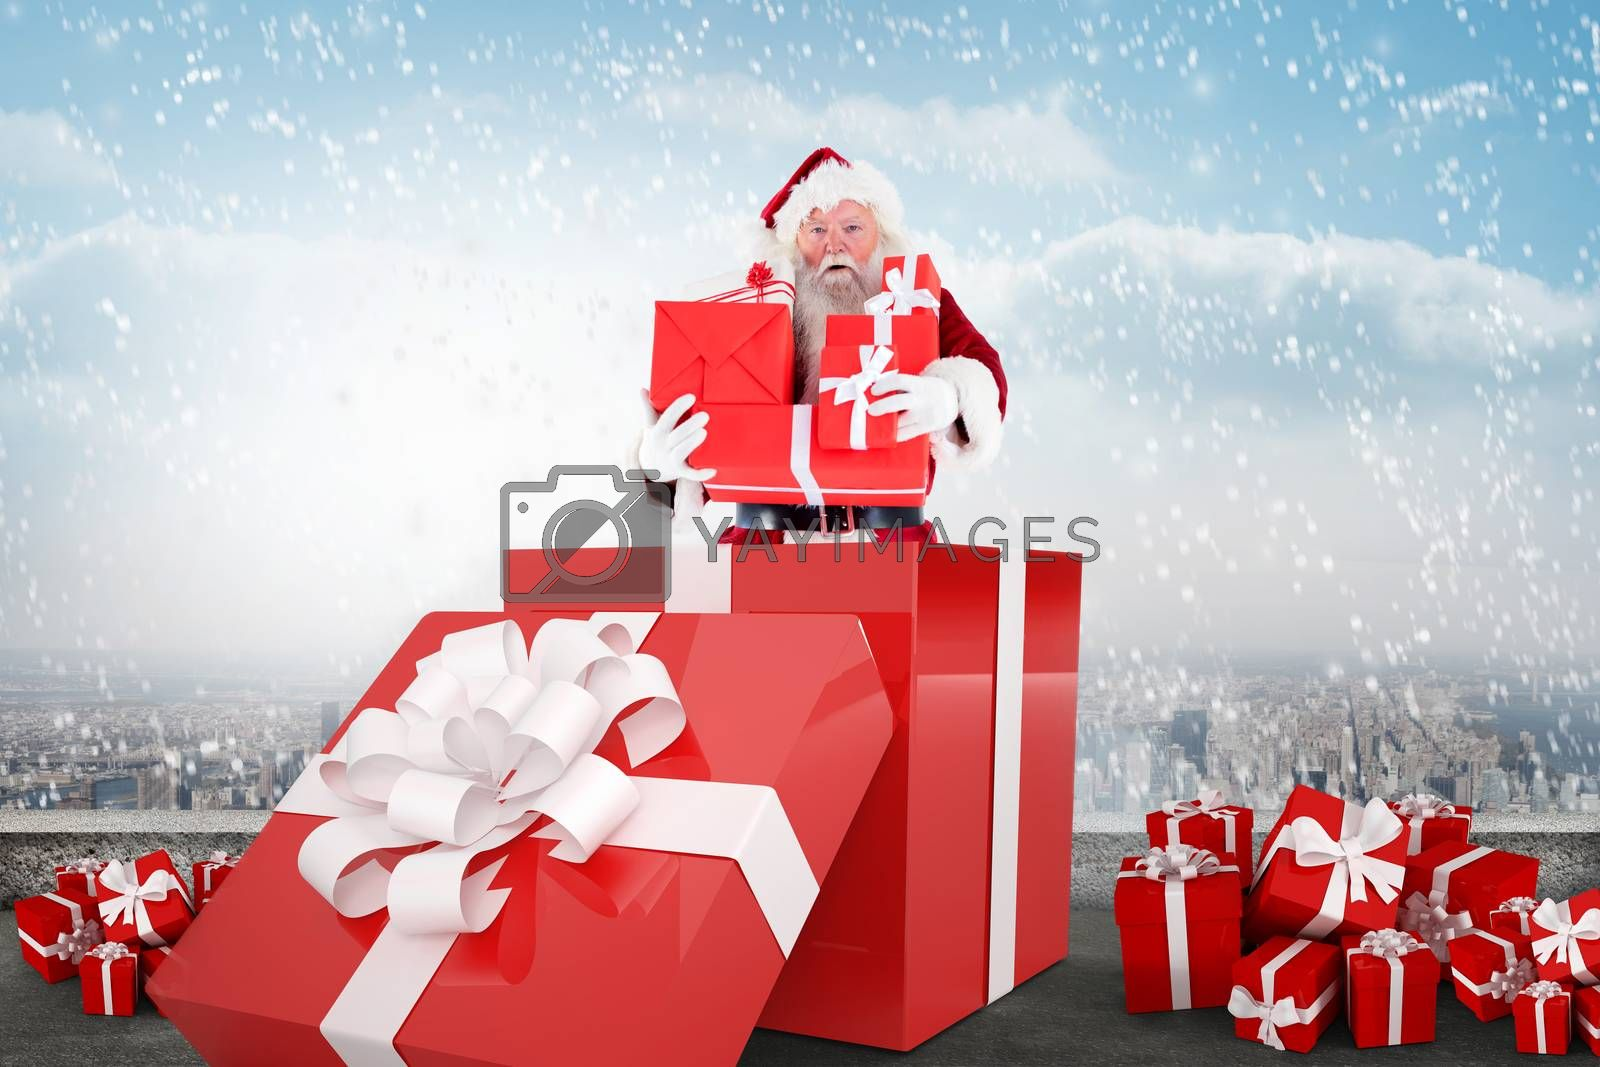 Santa standing in large gift against balcony overlooking city